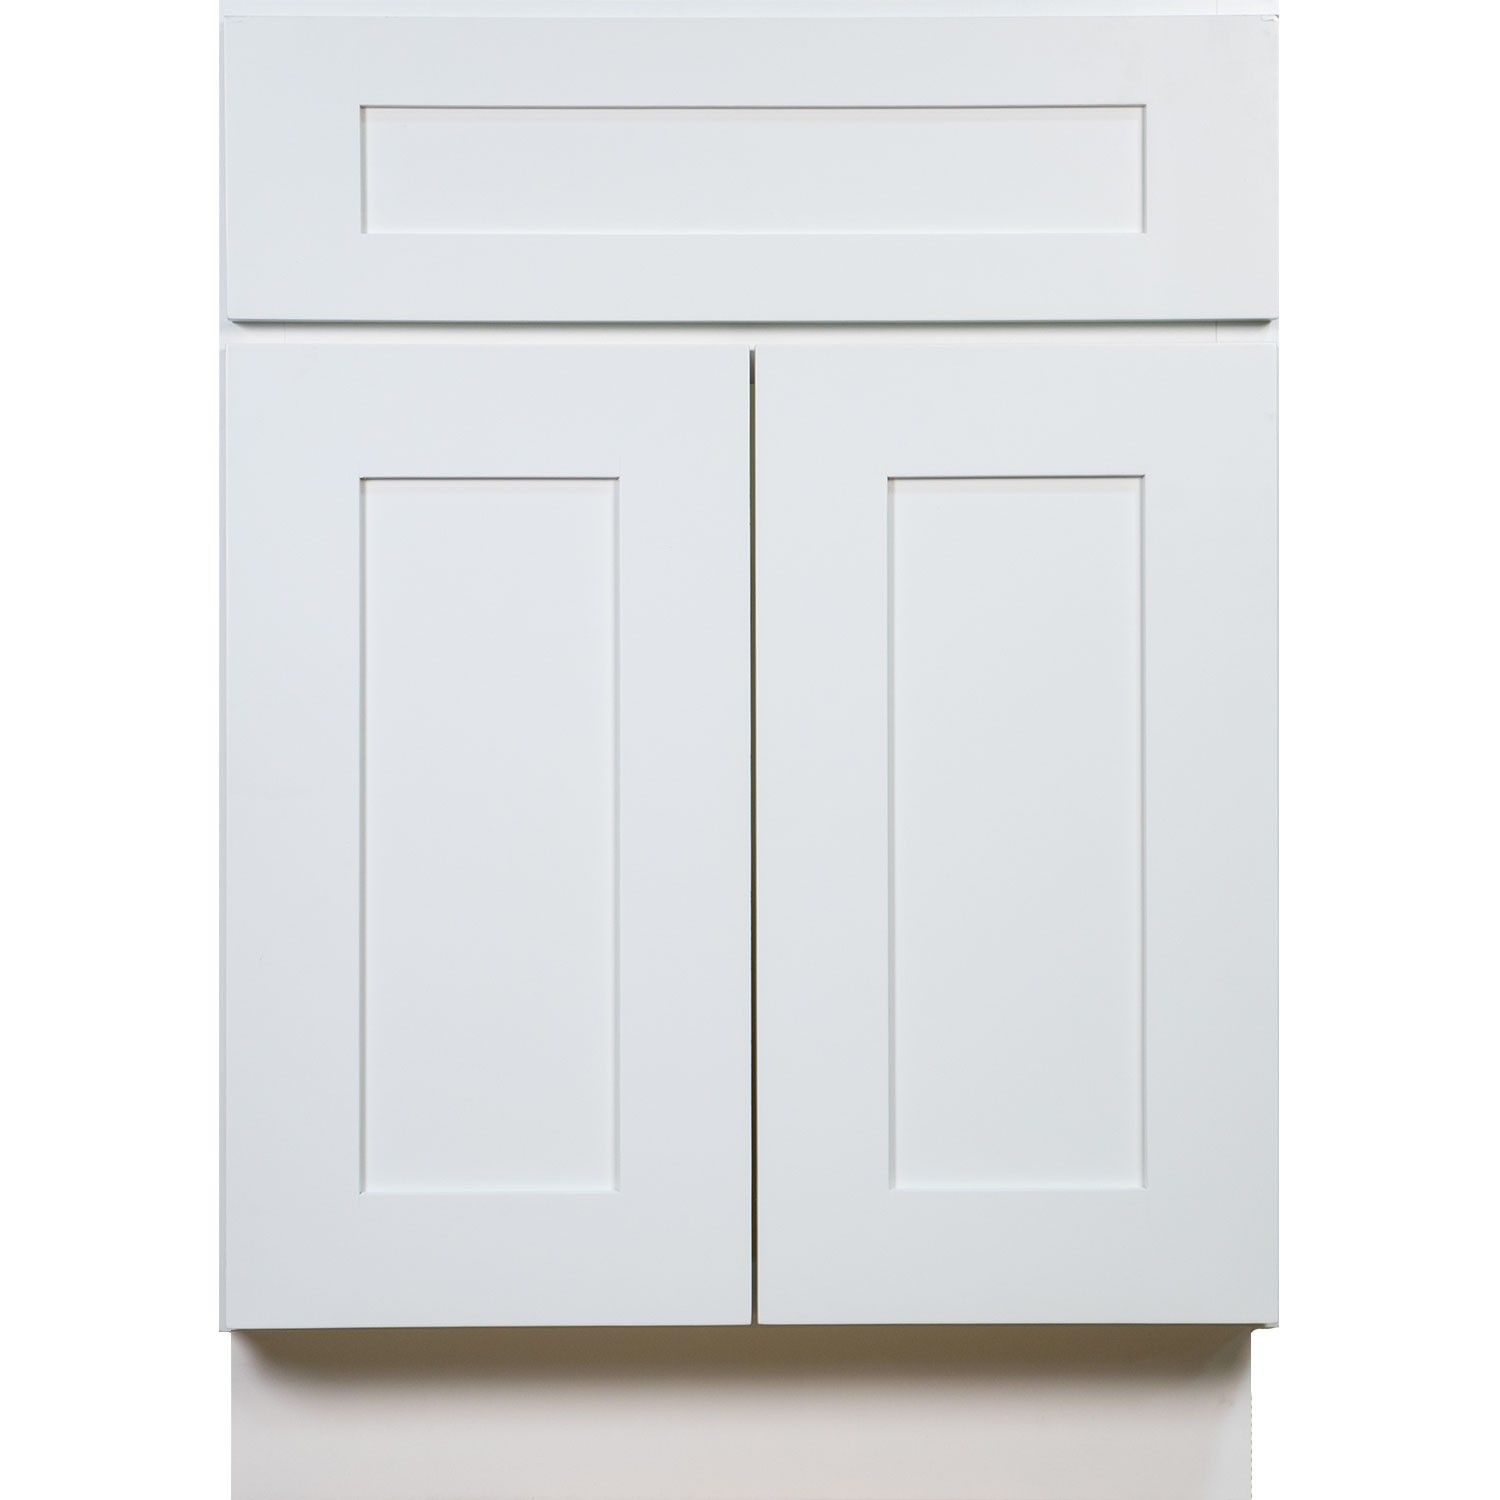 Bathroom Vanity Single Sink Cabinet in Shaker White with Soft Close ...